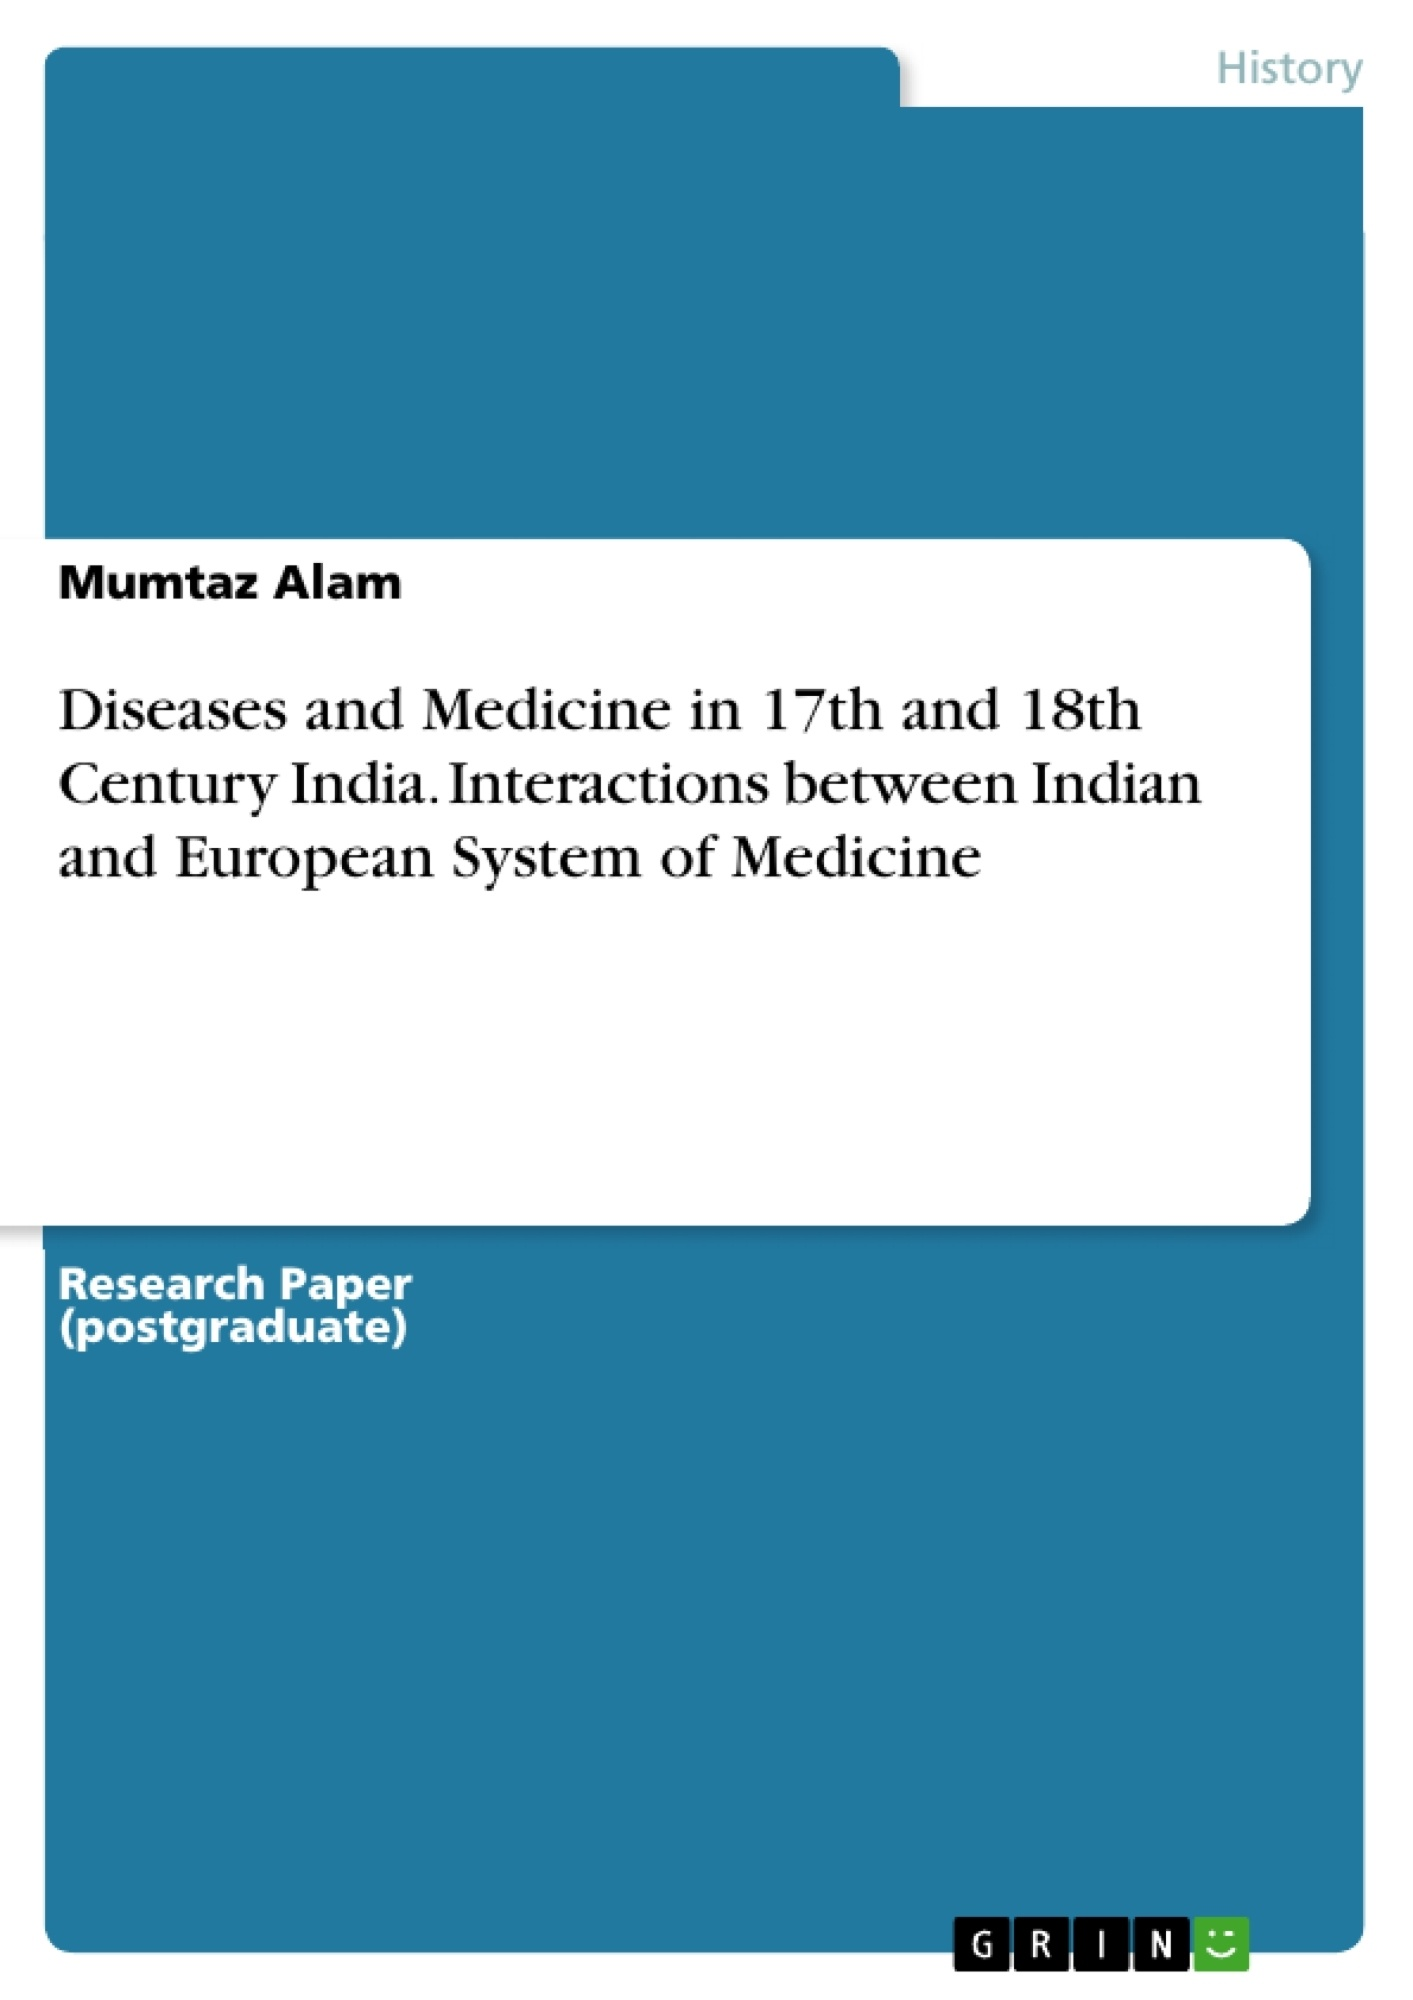 Title: Diseases and Medicine in 17th and 18th Century India. Interactions between Indian and European System of Medicine